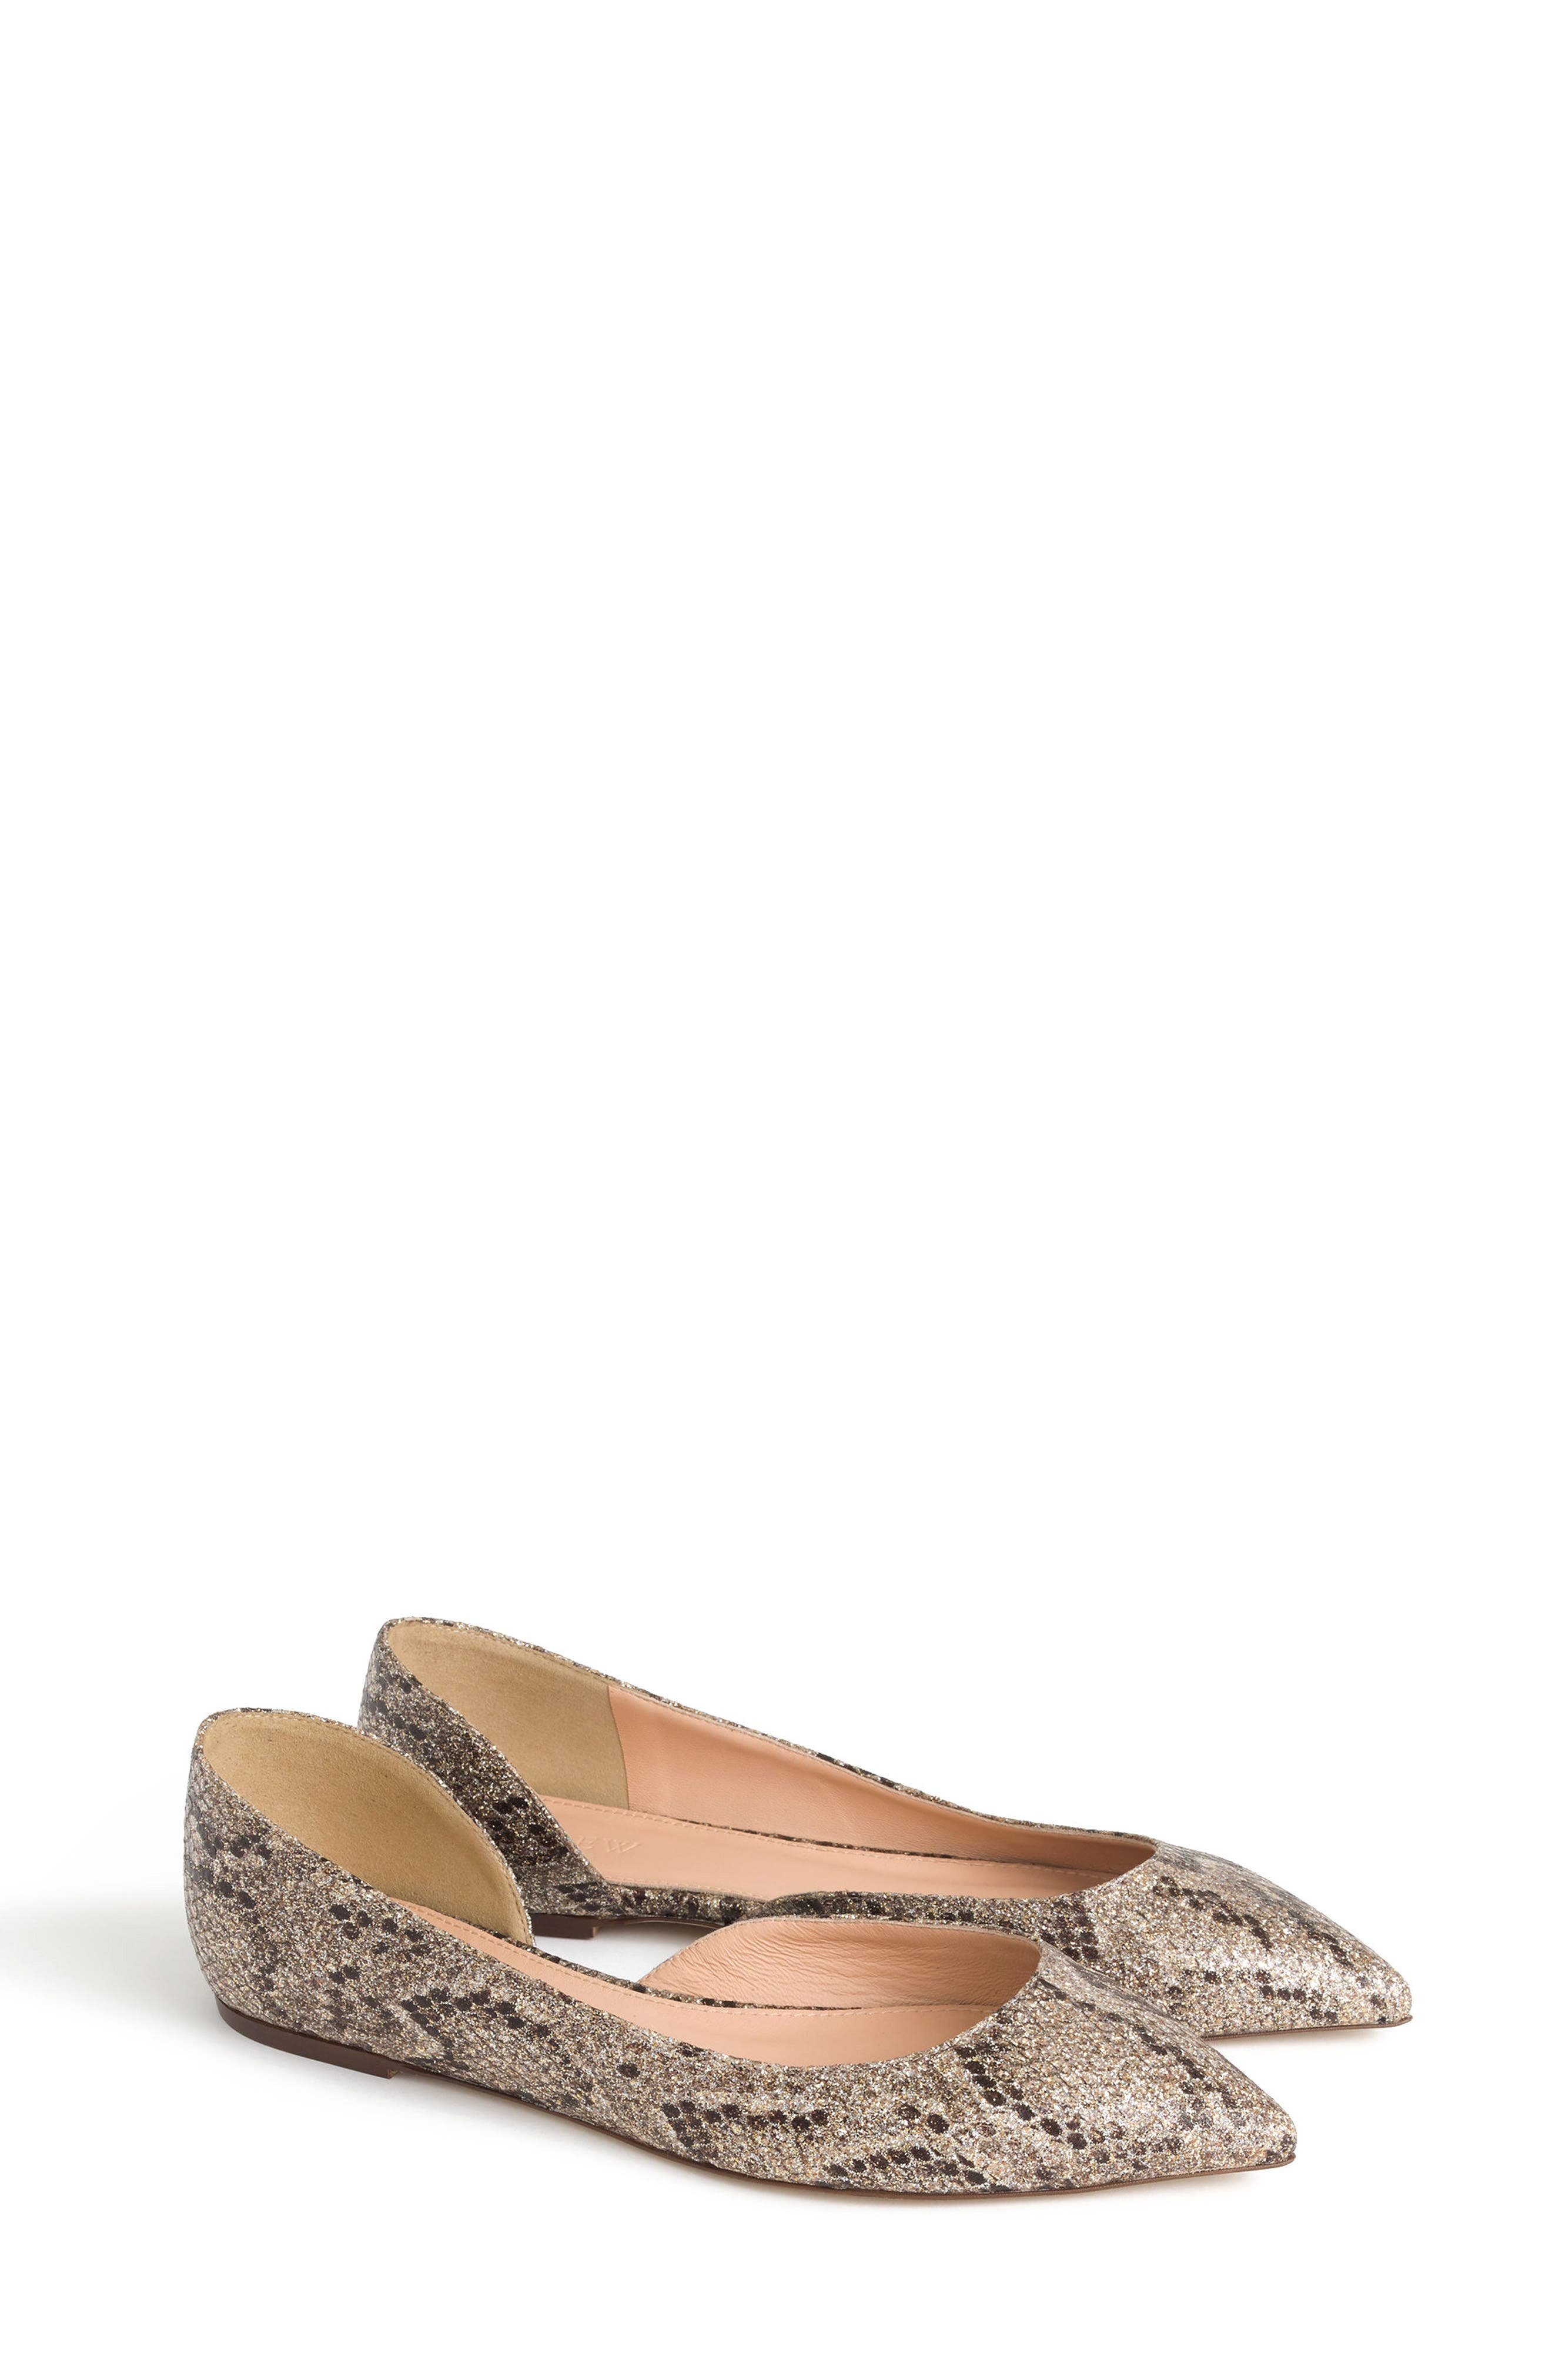 J.Crew Sadie Glitter Flat,                             Main thumbnail 1, color,                             Gold Brown Glitter Fabric